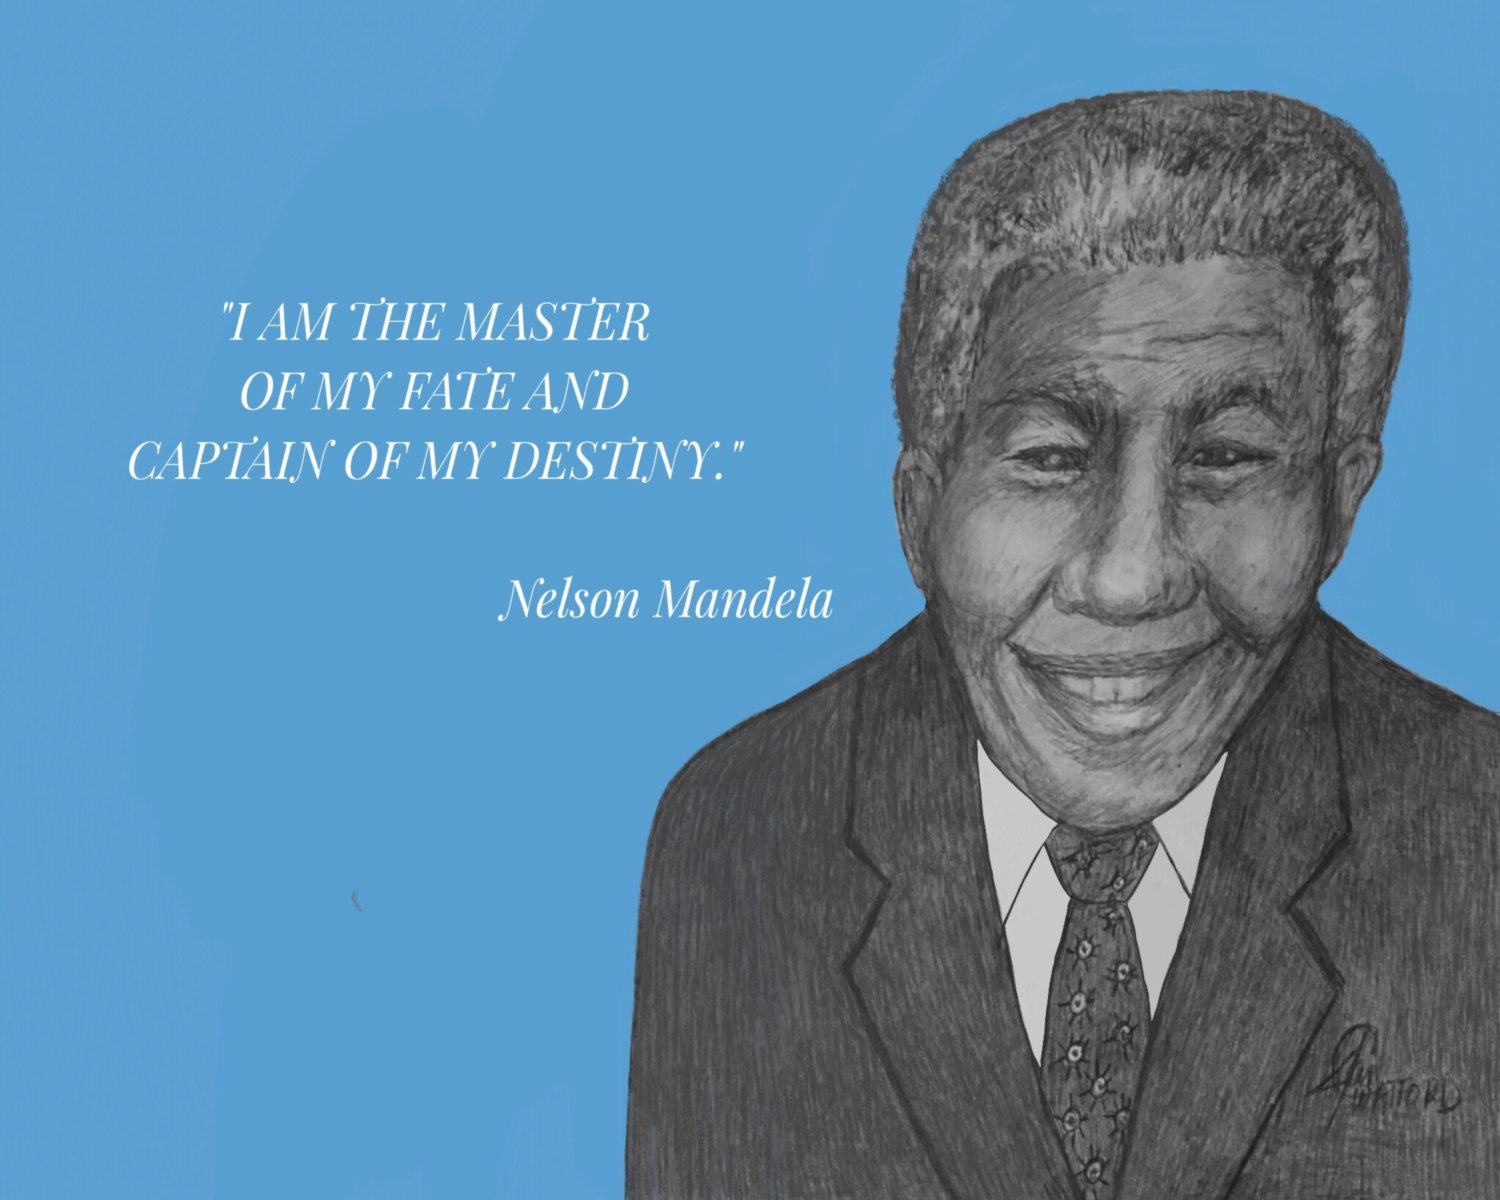 005 Nelson Mandela, Inspirational Quote, I am the master of my